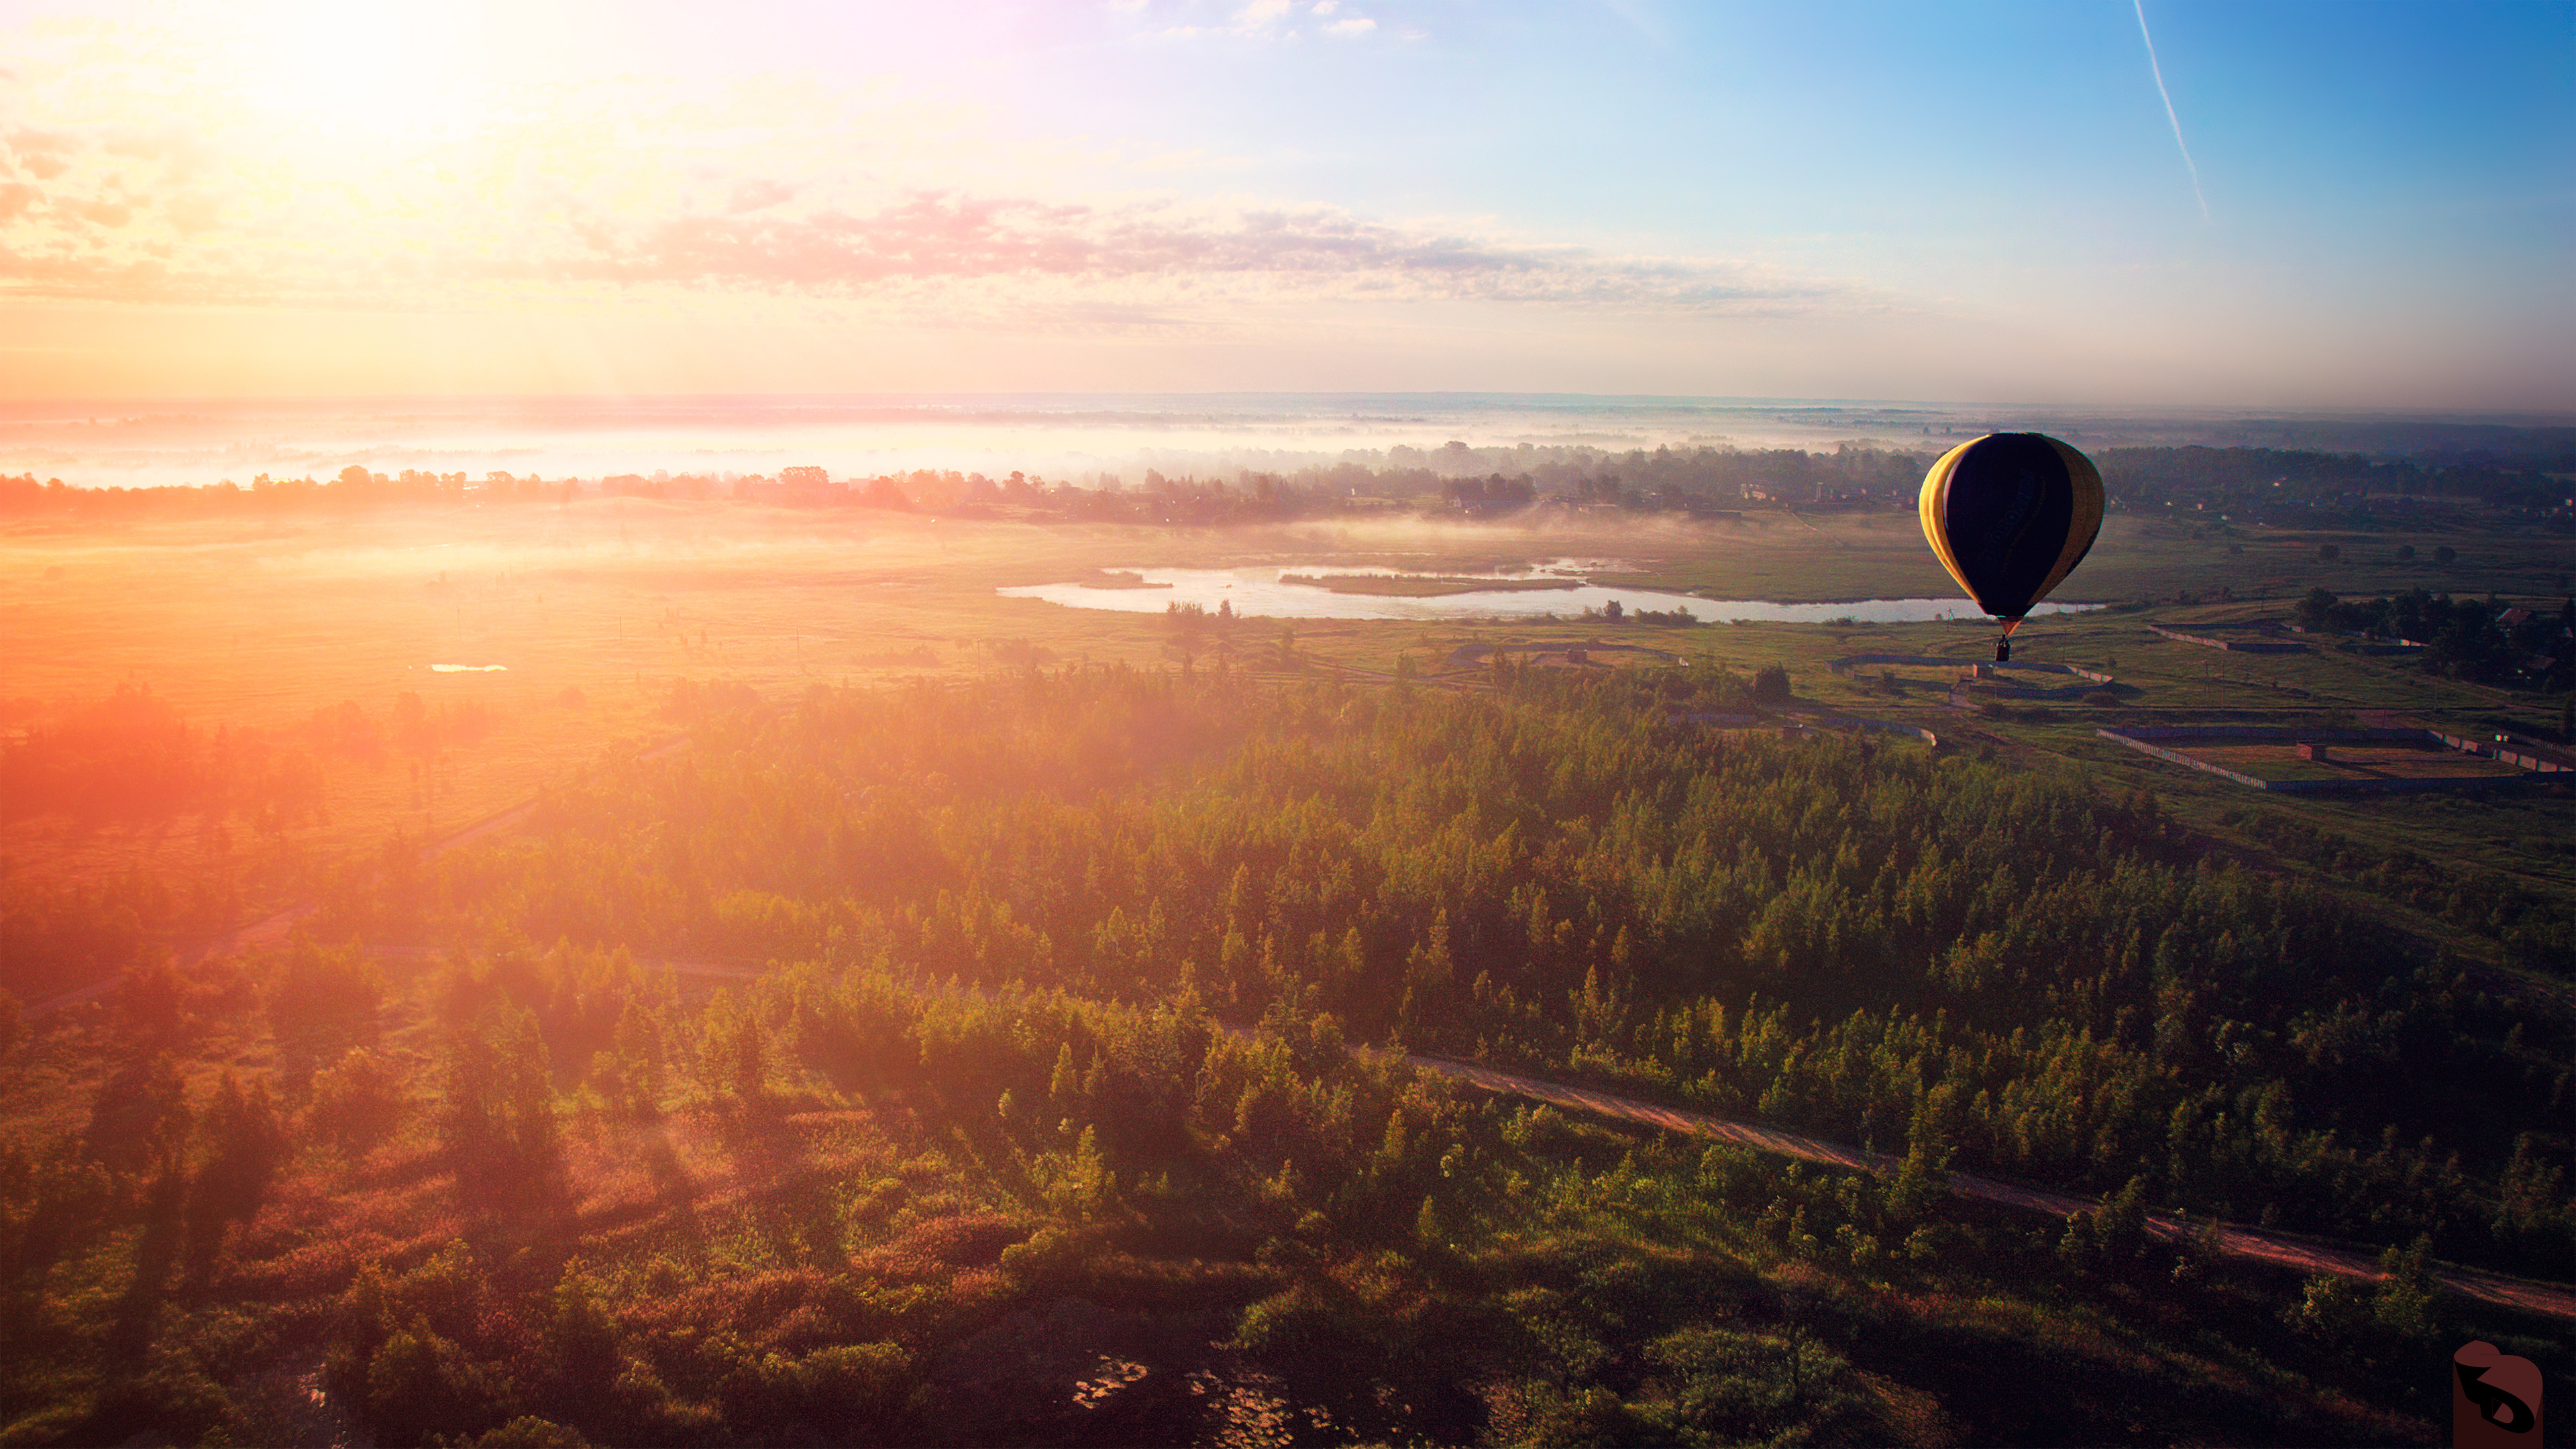 Morning flight hot air balloon hd nature 4k wallpapers images backgrounds photos and pictures - Air wallpaper hd ...